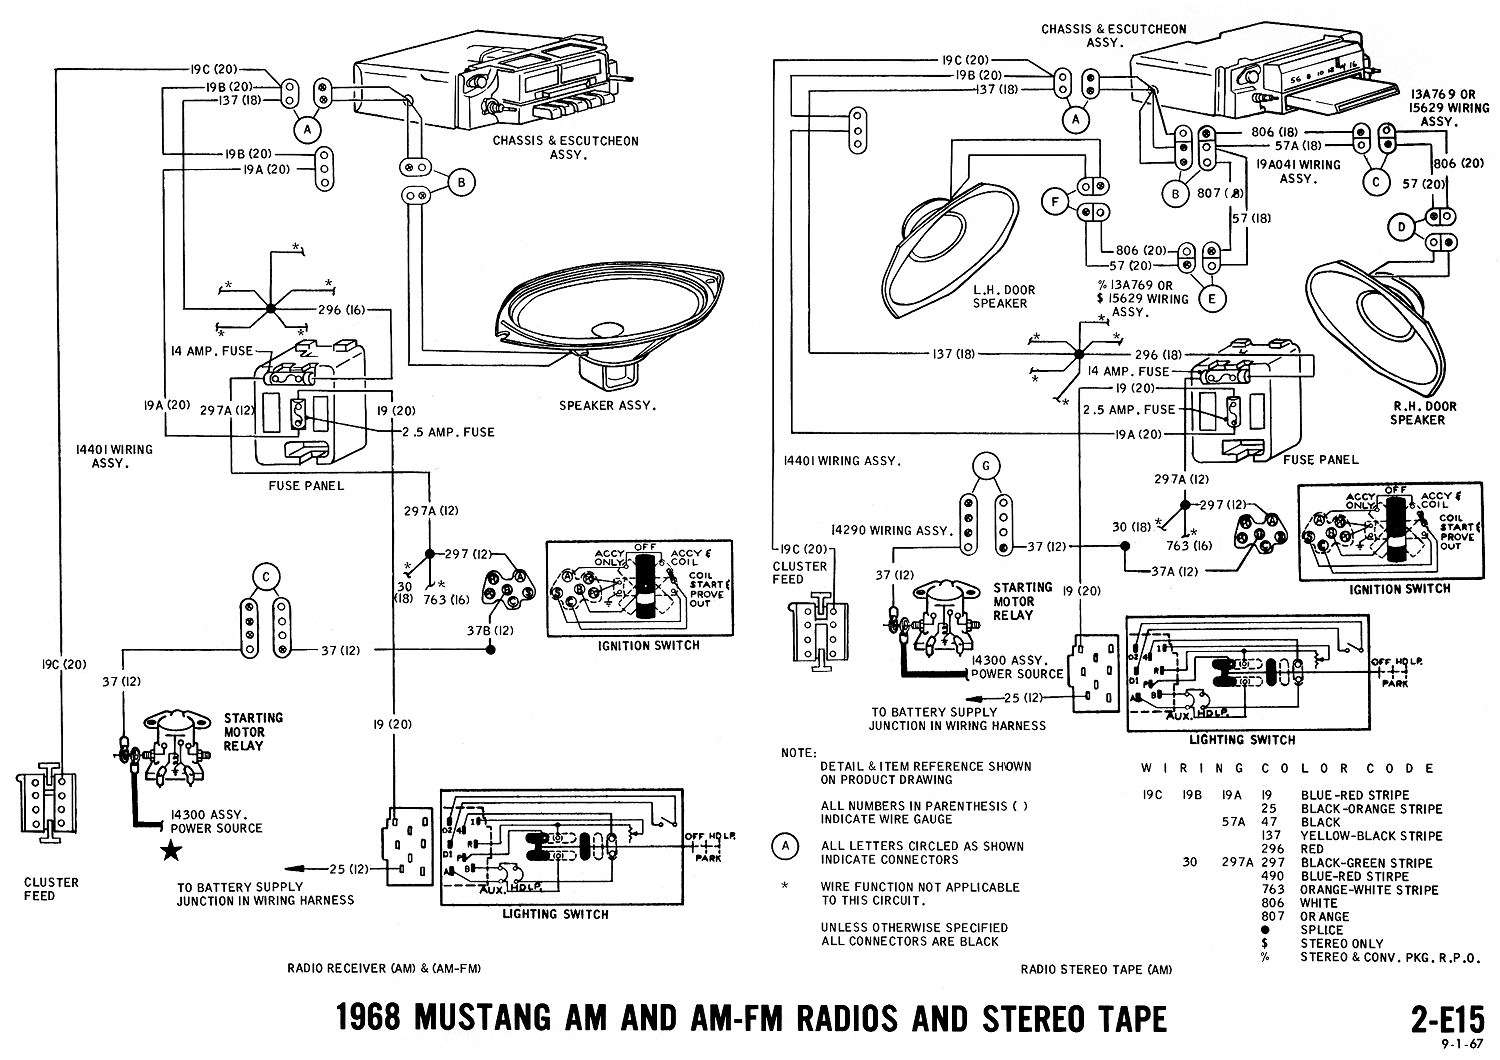 1968 mustang wiring schematic wiring diagrams 1968 mustang fuse box wiring diagrams